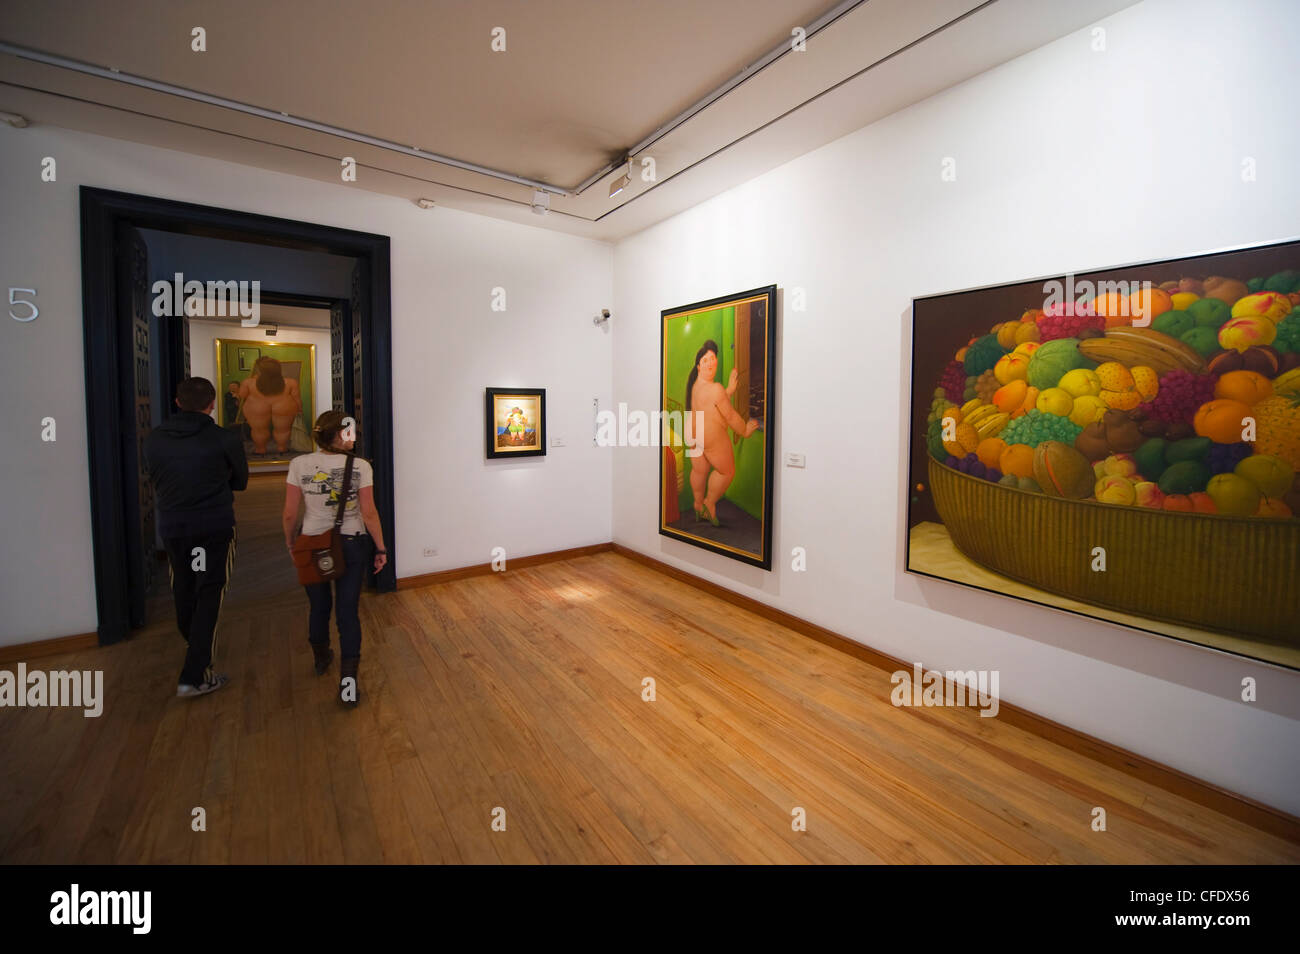 Pantings in the Botero Museum, art work by Fernando Botero, Bogota, Colombia, South America - Stock Image